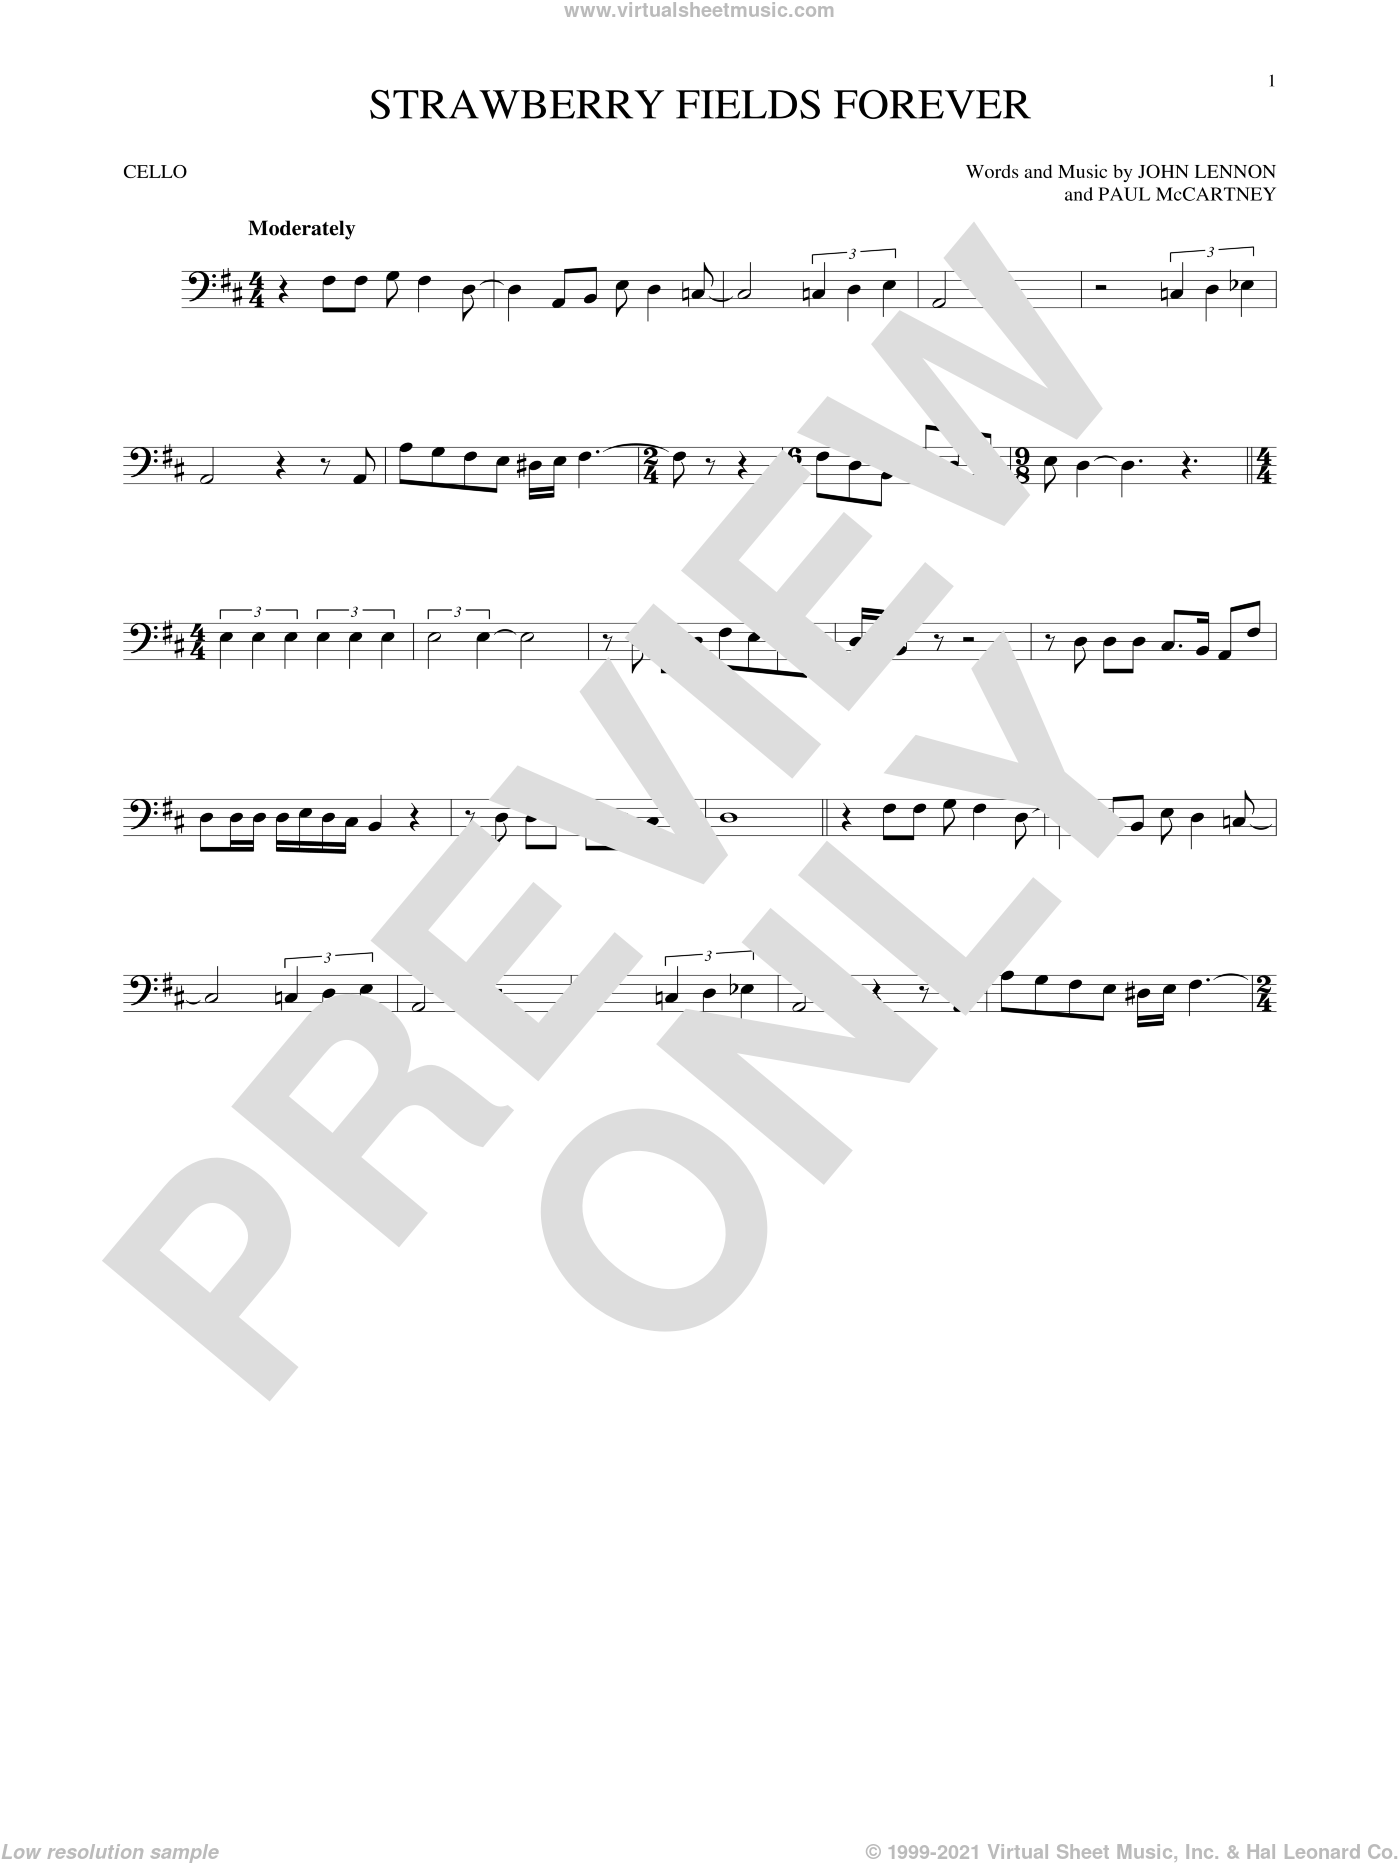 Strawberry Fields Forever sheet music for cello solo by The Beatles, John Lennon and Paul McCartney, intermediate skill level